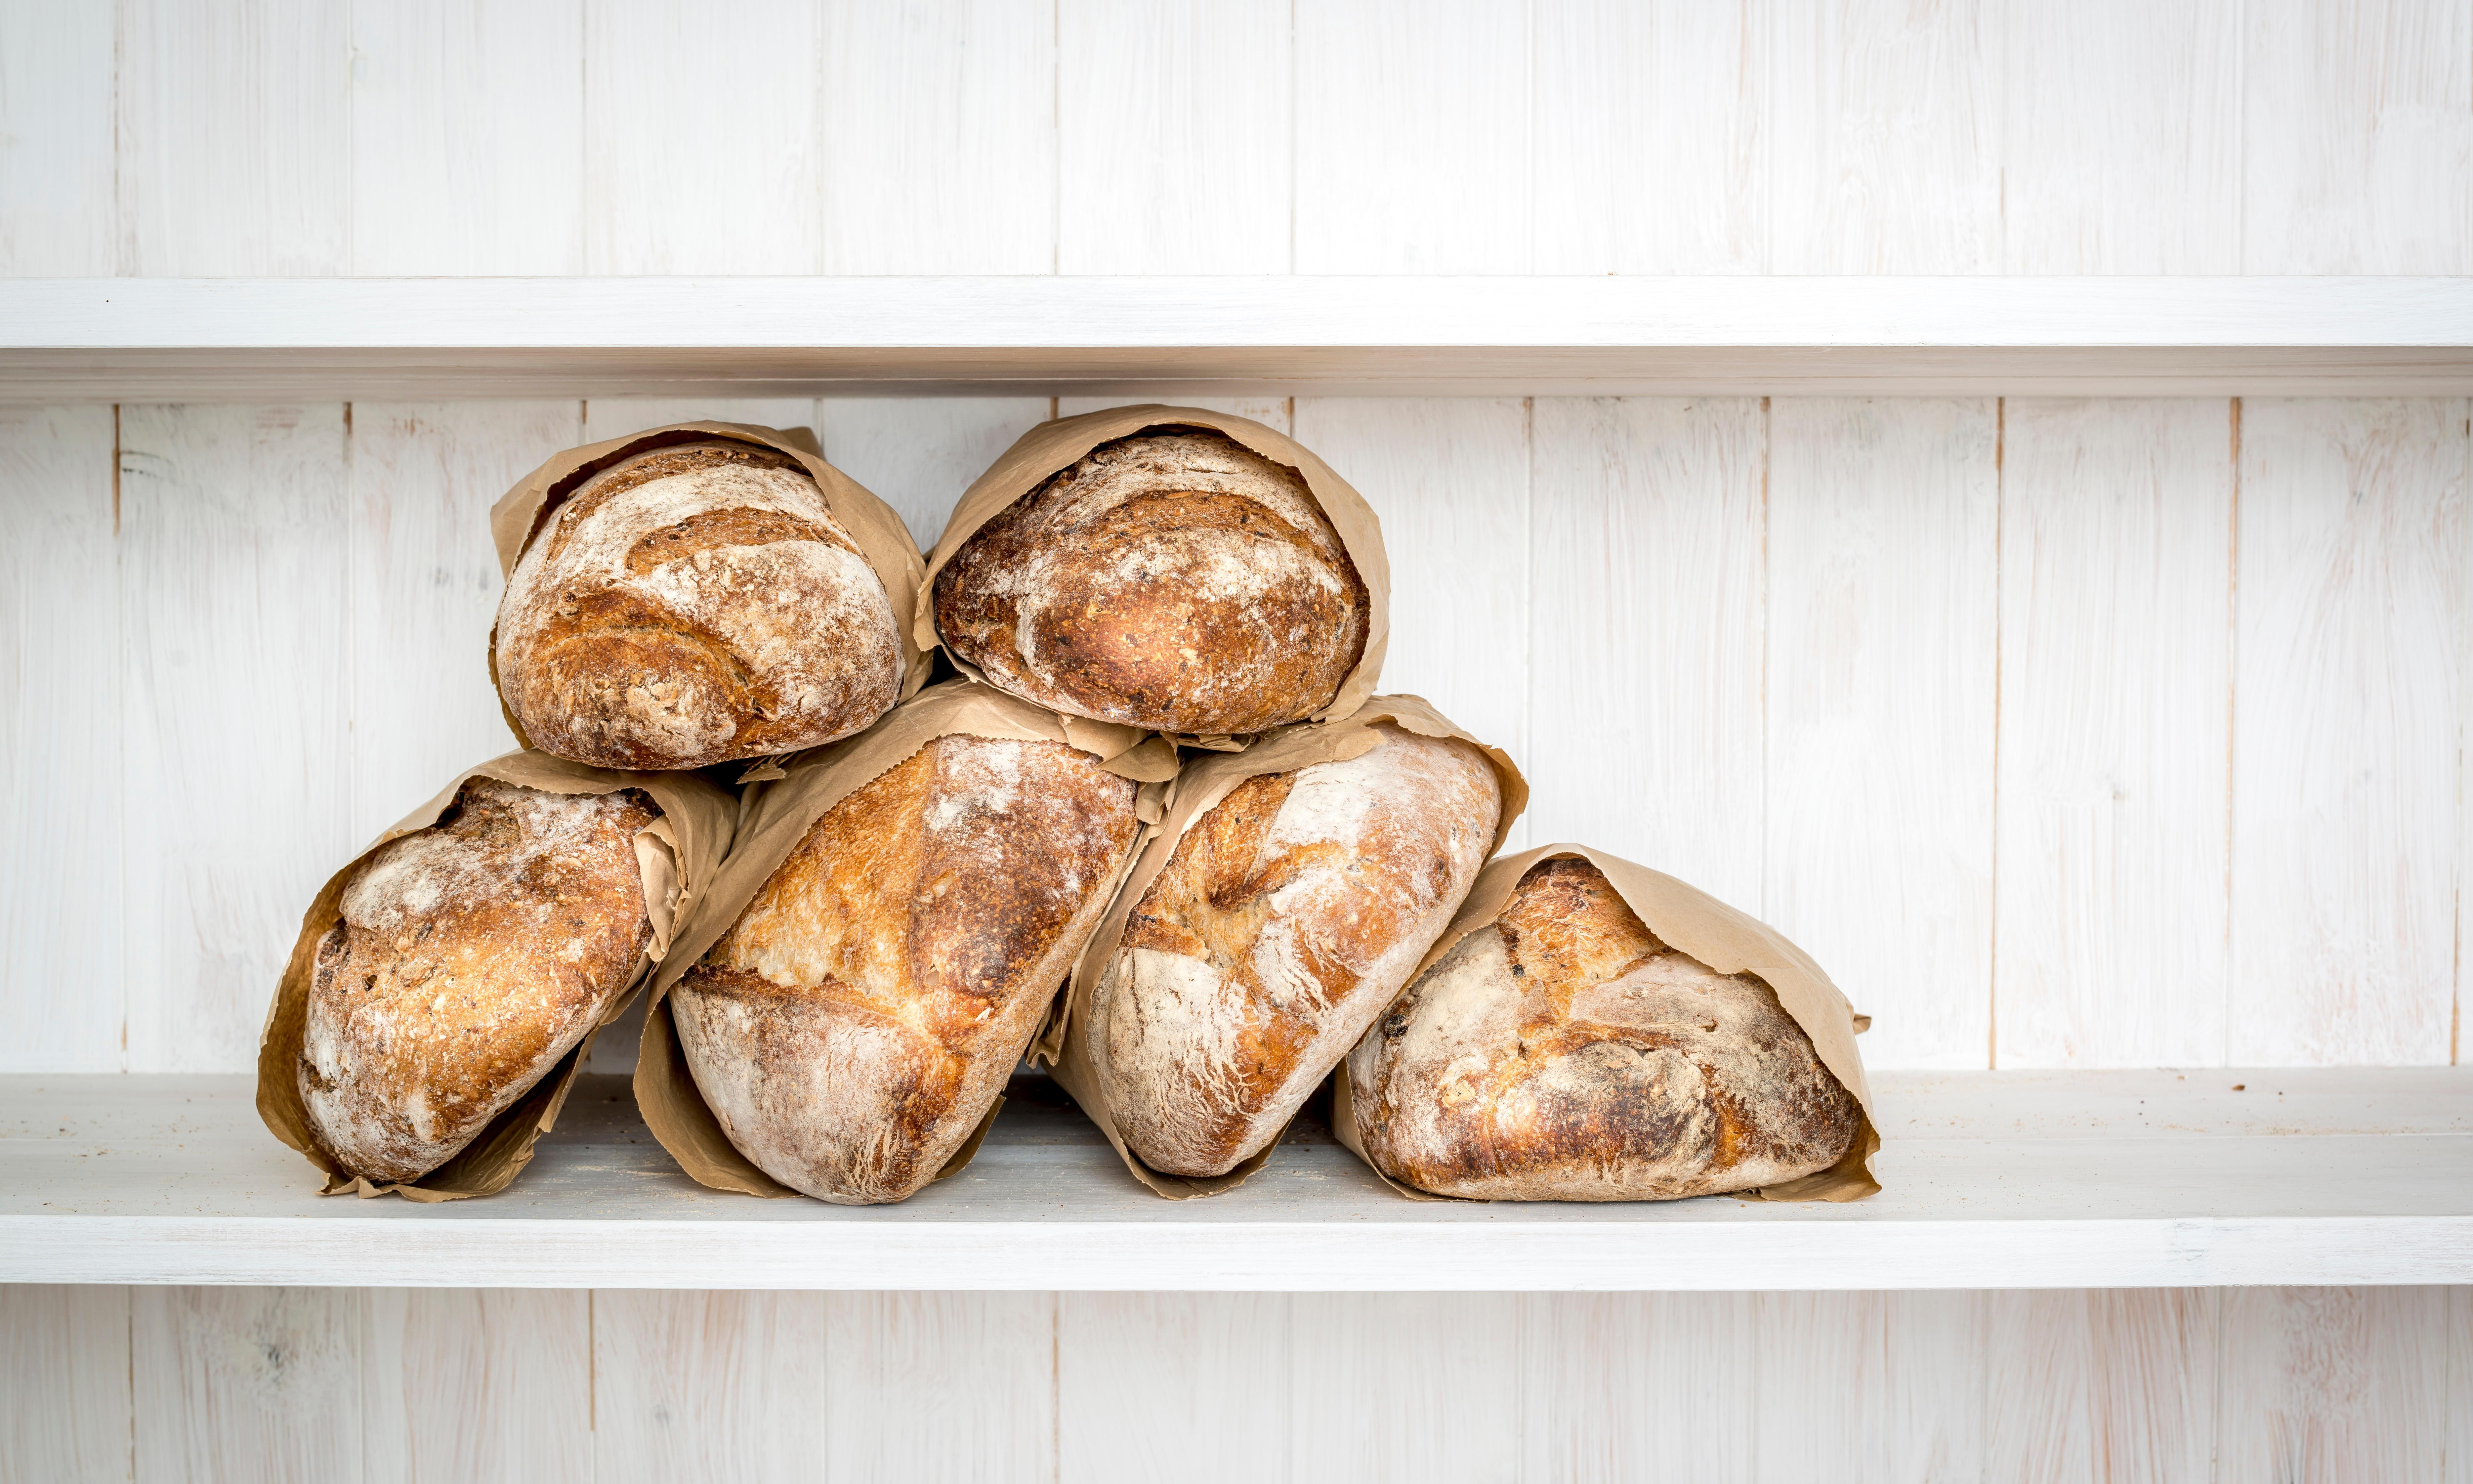 No-deal Brexit likely to push up price of bread in Ireland